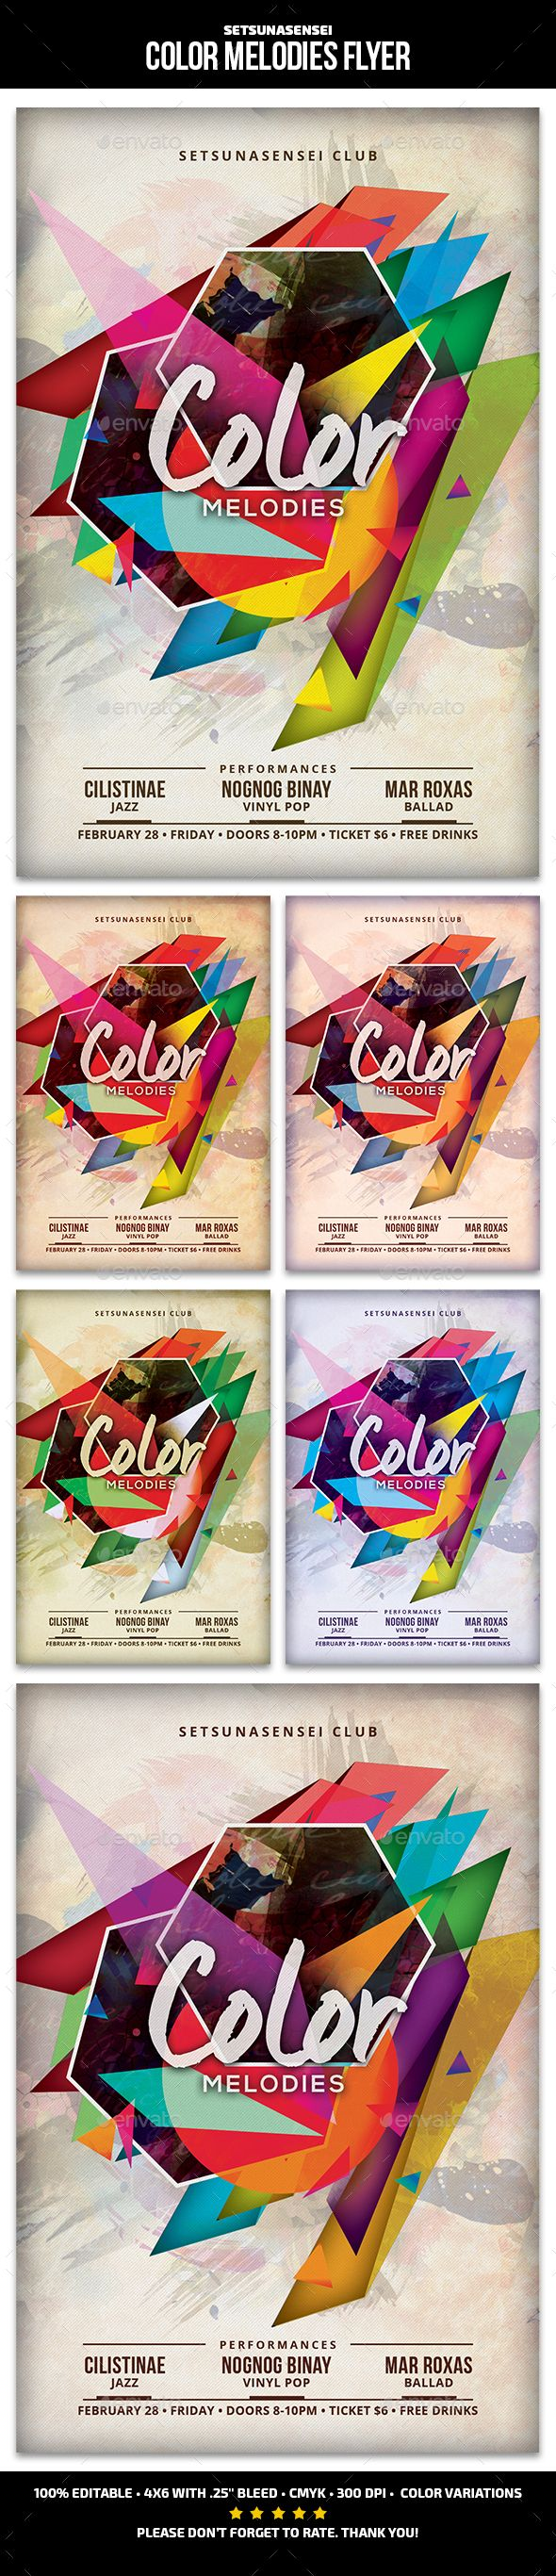 Color Melodies Flyer Template PSD. Download here: http://graphicriver.net/item/color-melodies-flyer/15539515?ref=ksioks